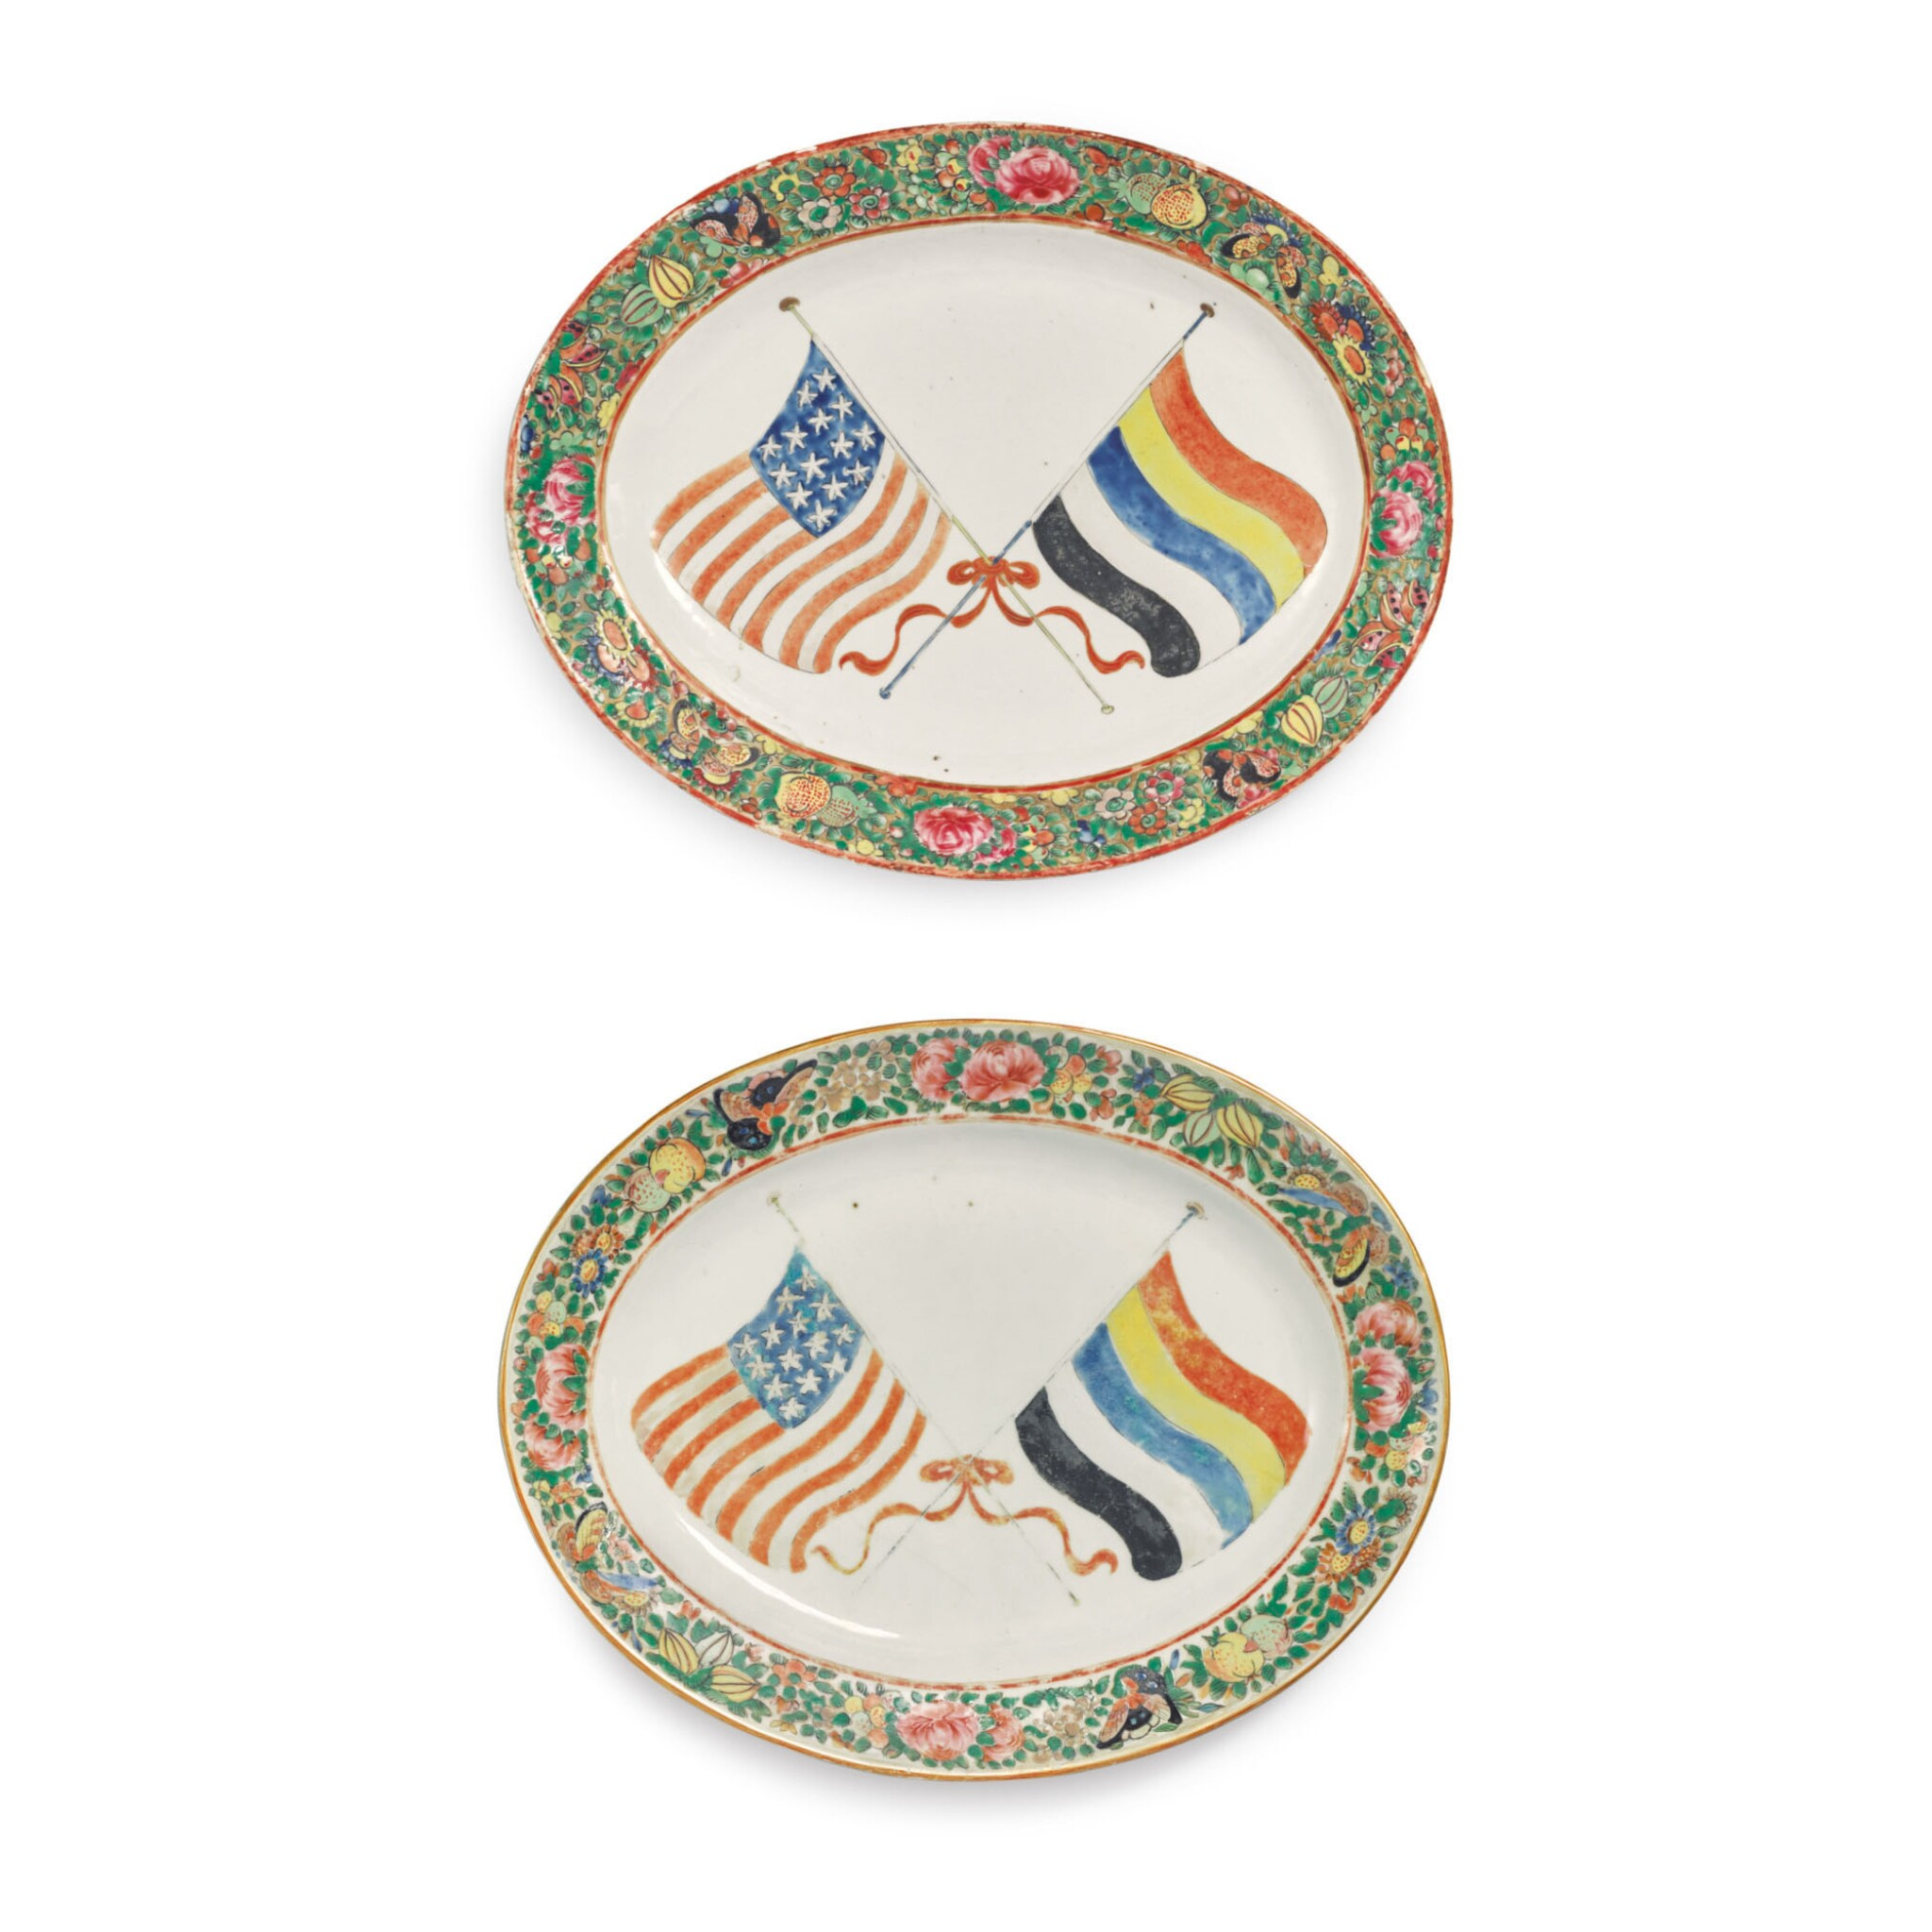 View full screen - View 1 of Lot 1886. A RARE PAIR OF CANTON FAMILLE-ROSE OVAL PLATTERS BEARING THE FLAGS OF THE UNITED STATES OF AMERICA AND THE REPUBLIC OF CHINA, REPUBLIC PERIOD, 1912-28 | 民國 1912-28年 廣彩中美國旗圖盤一對.